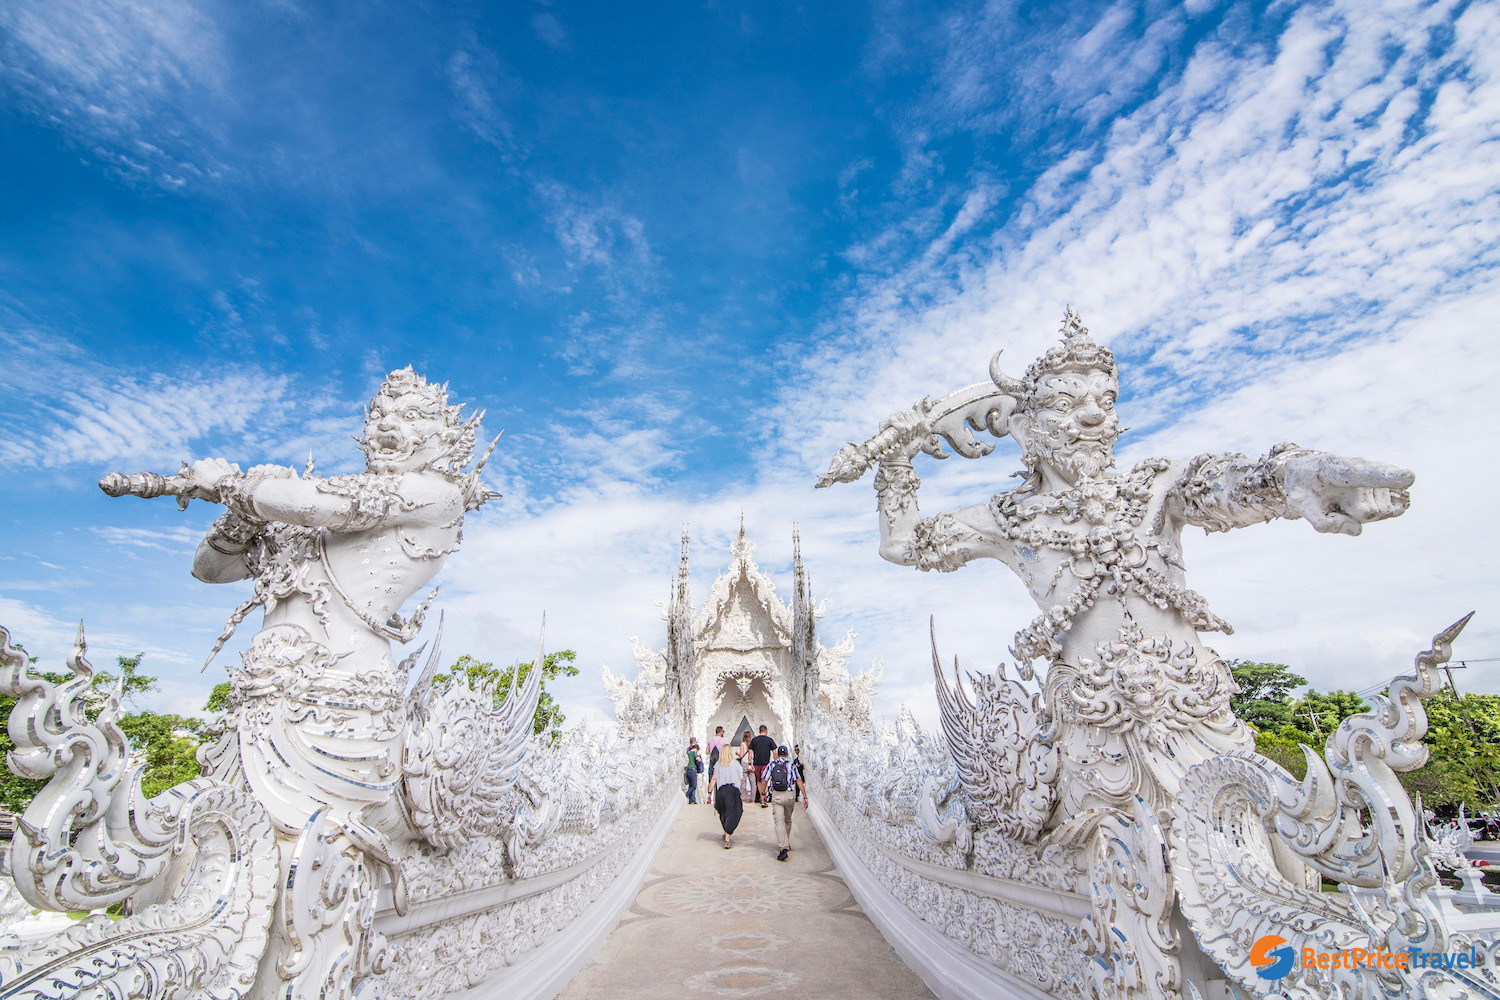 The entrance into the White Temple